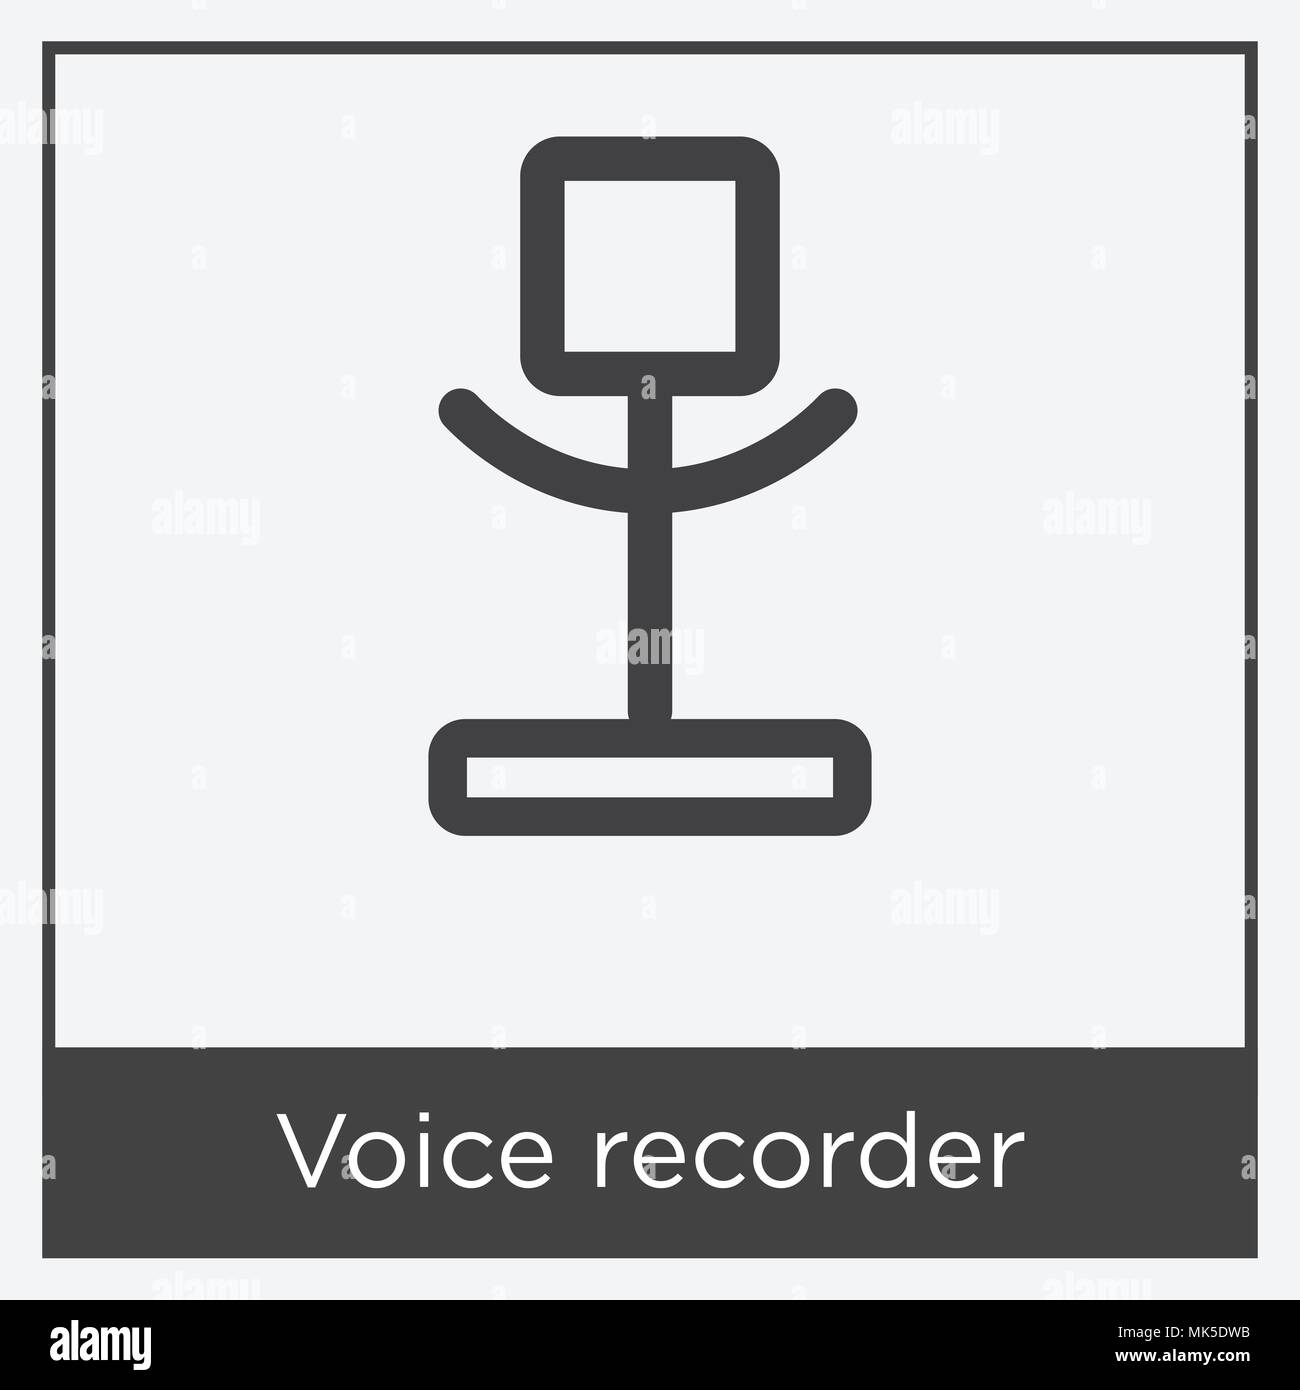 Voice recorder icon isolated on white background with gray frame ...